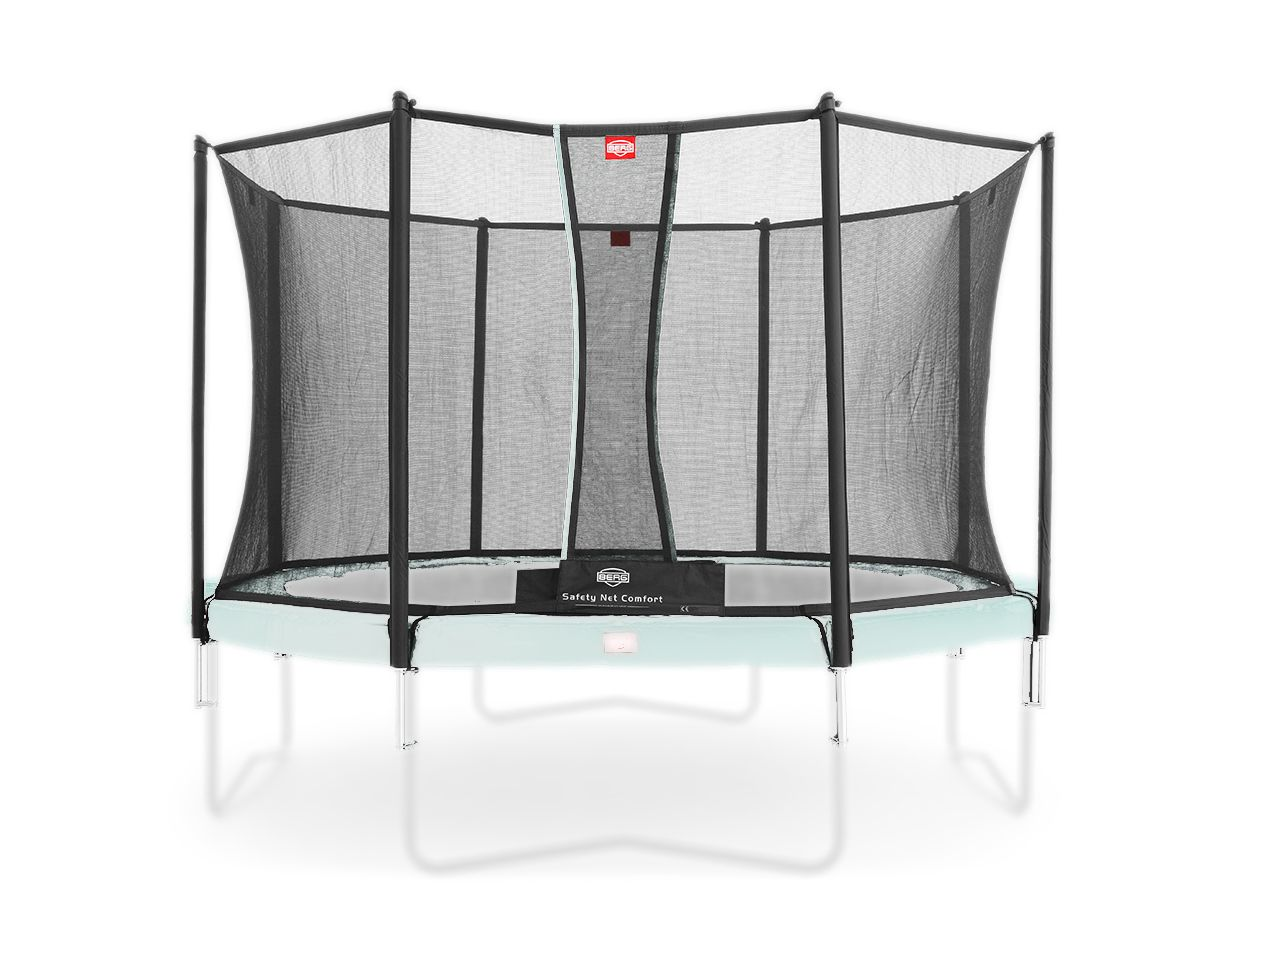 BERG Safety Net Comfort 330 (11 ft)